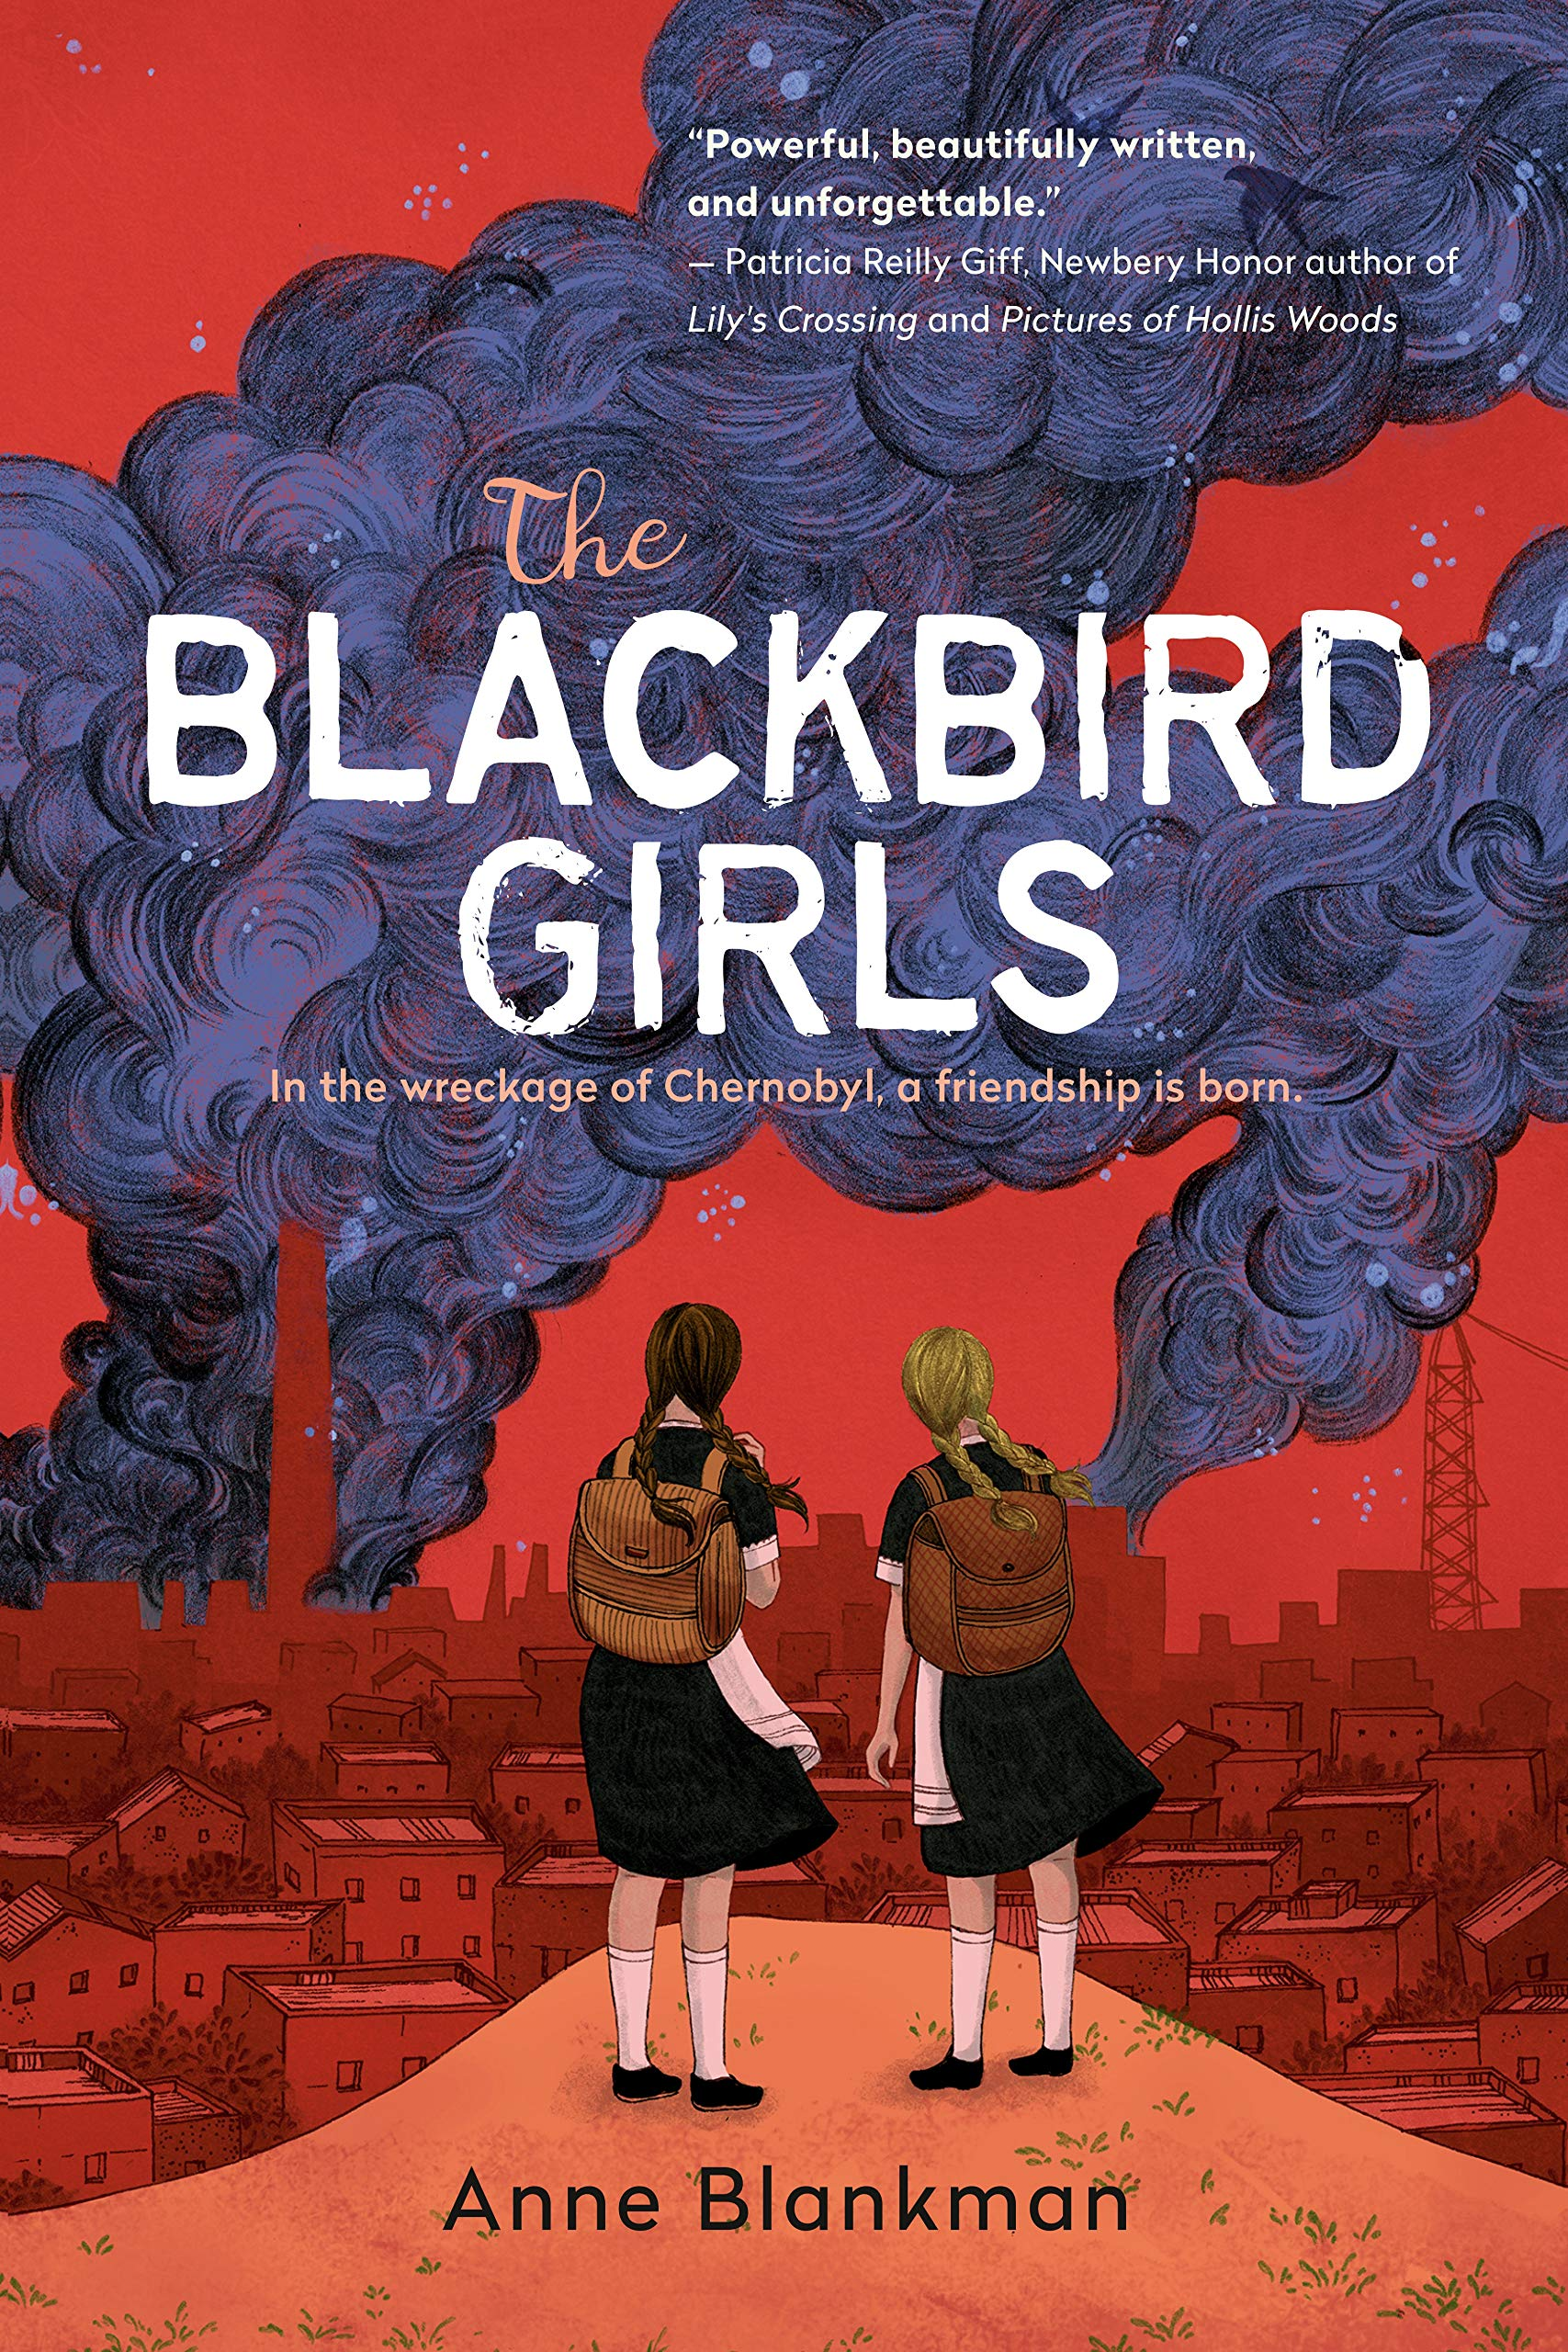 The Blackbird Girls: Blankman, Anne: 9781984837356: Amazon.com: Books